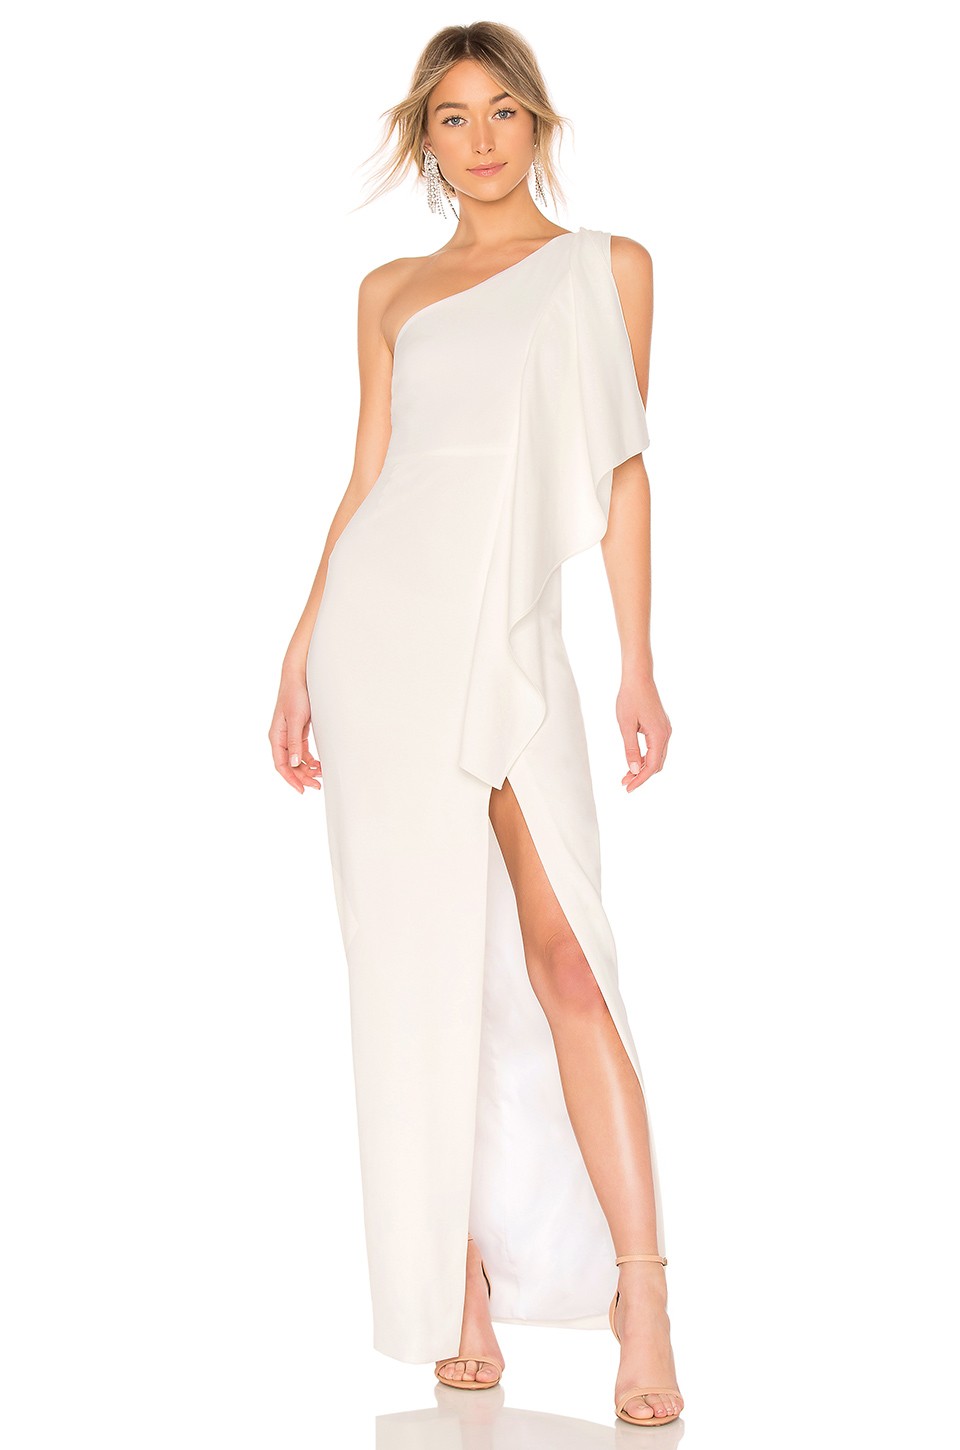 SIENNA GOWN BY LIKELY, $378 AT REVOLVE.COM